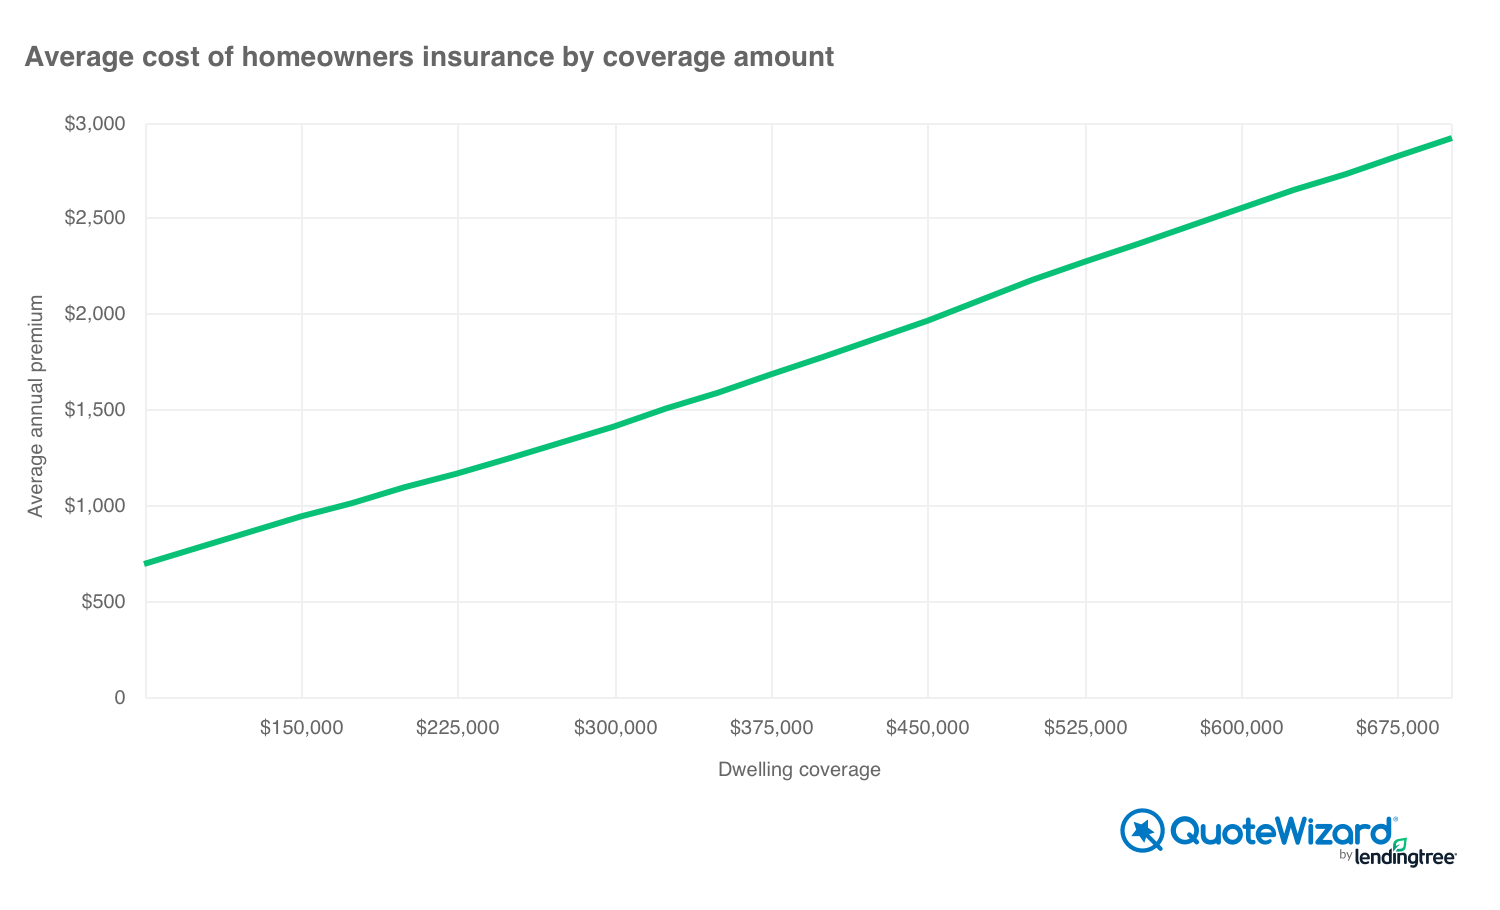 average cost of homeowners insurance by dwelling coverage